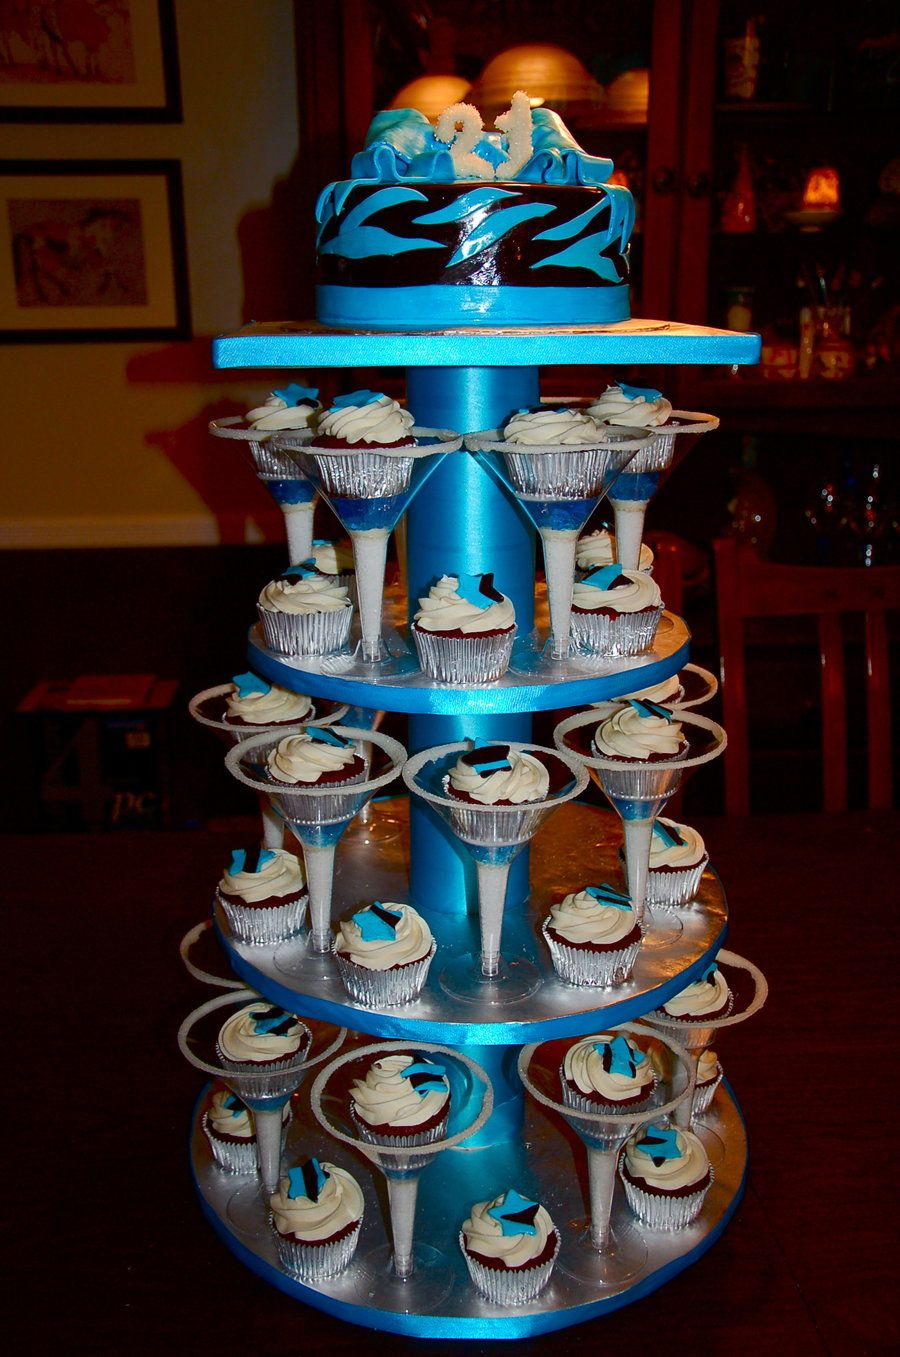 21st birthday cupcakes full display by KeepItSweetdeviantartcom